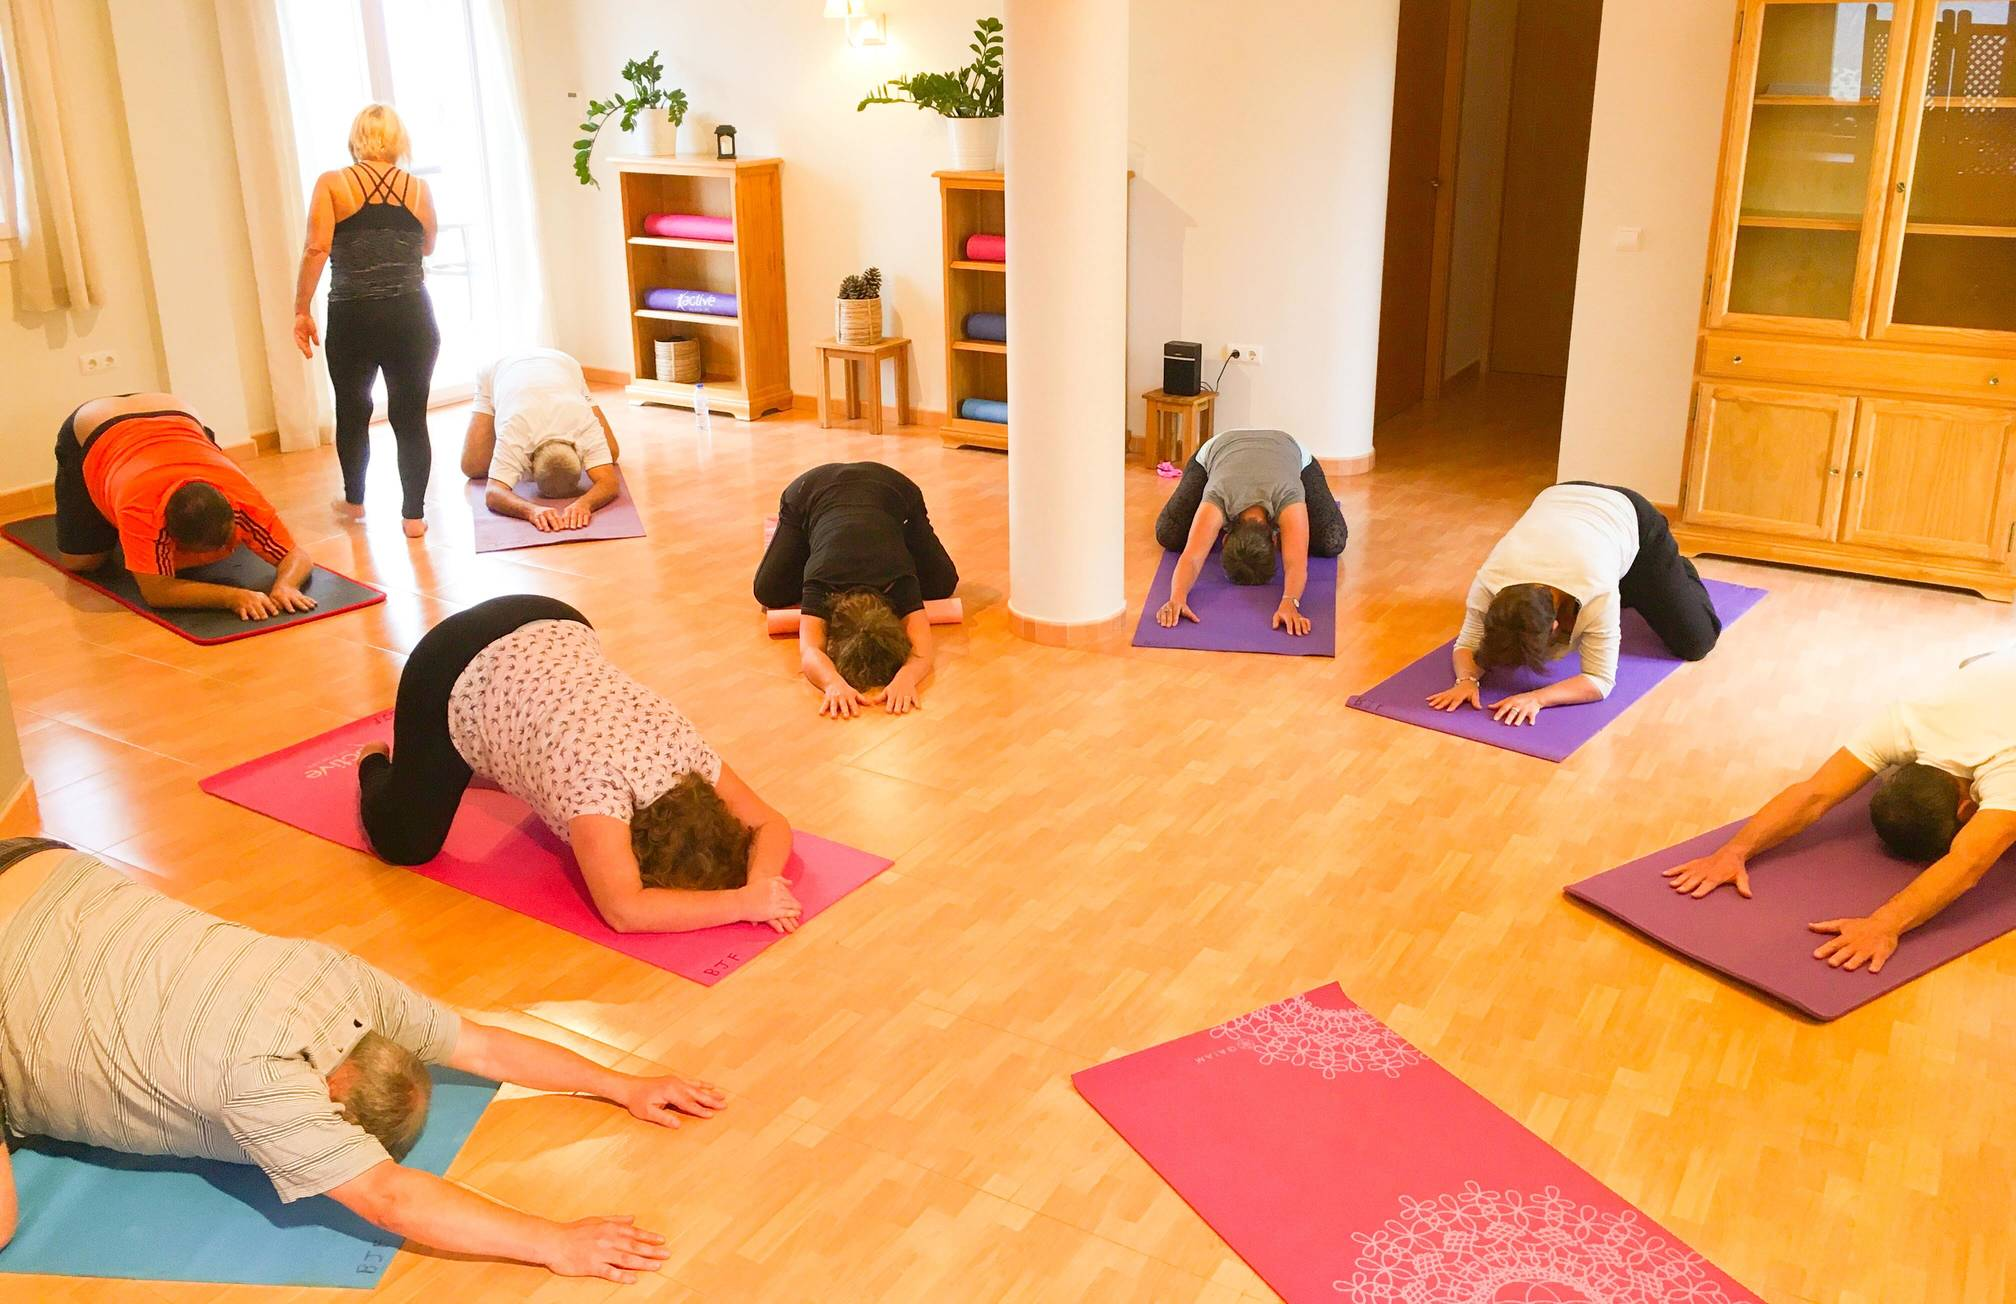 rsz_yoga_room_students_practising_puppy_pose